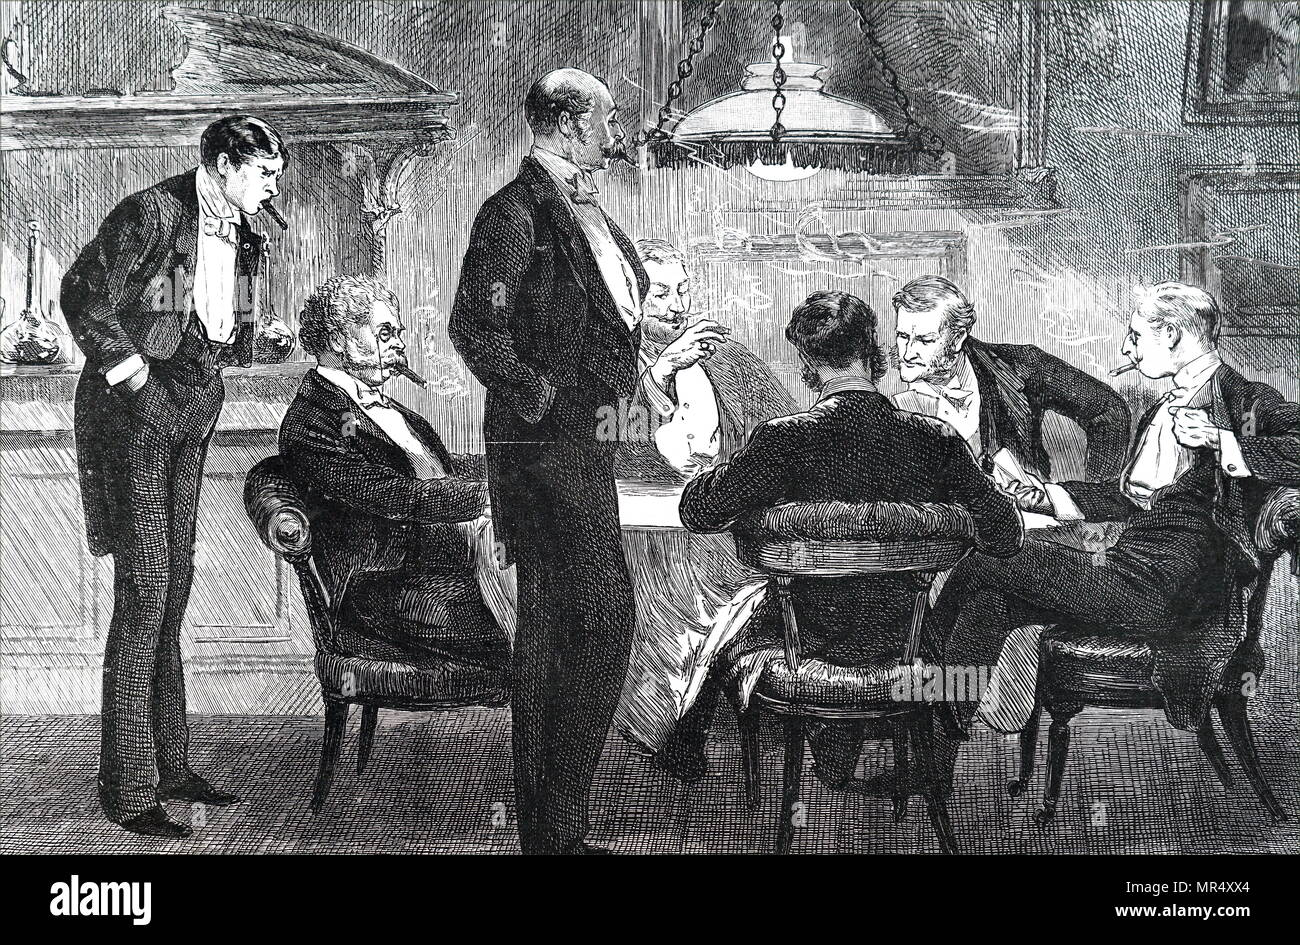 Illustration depicting gentlemen at the card table smoking cigars. Dated 19th century - Stock Image